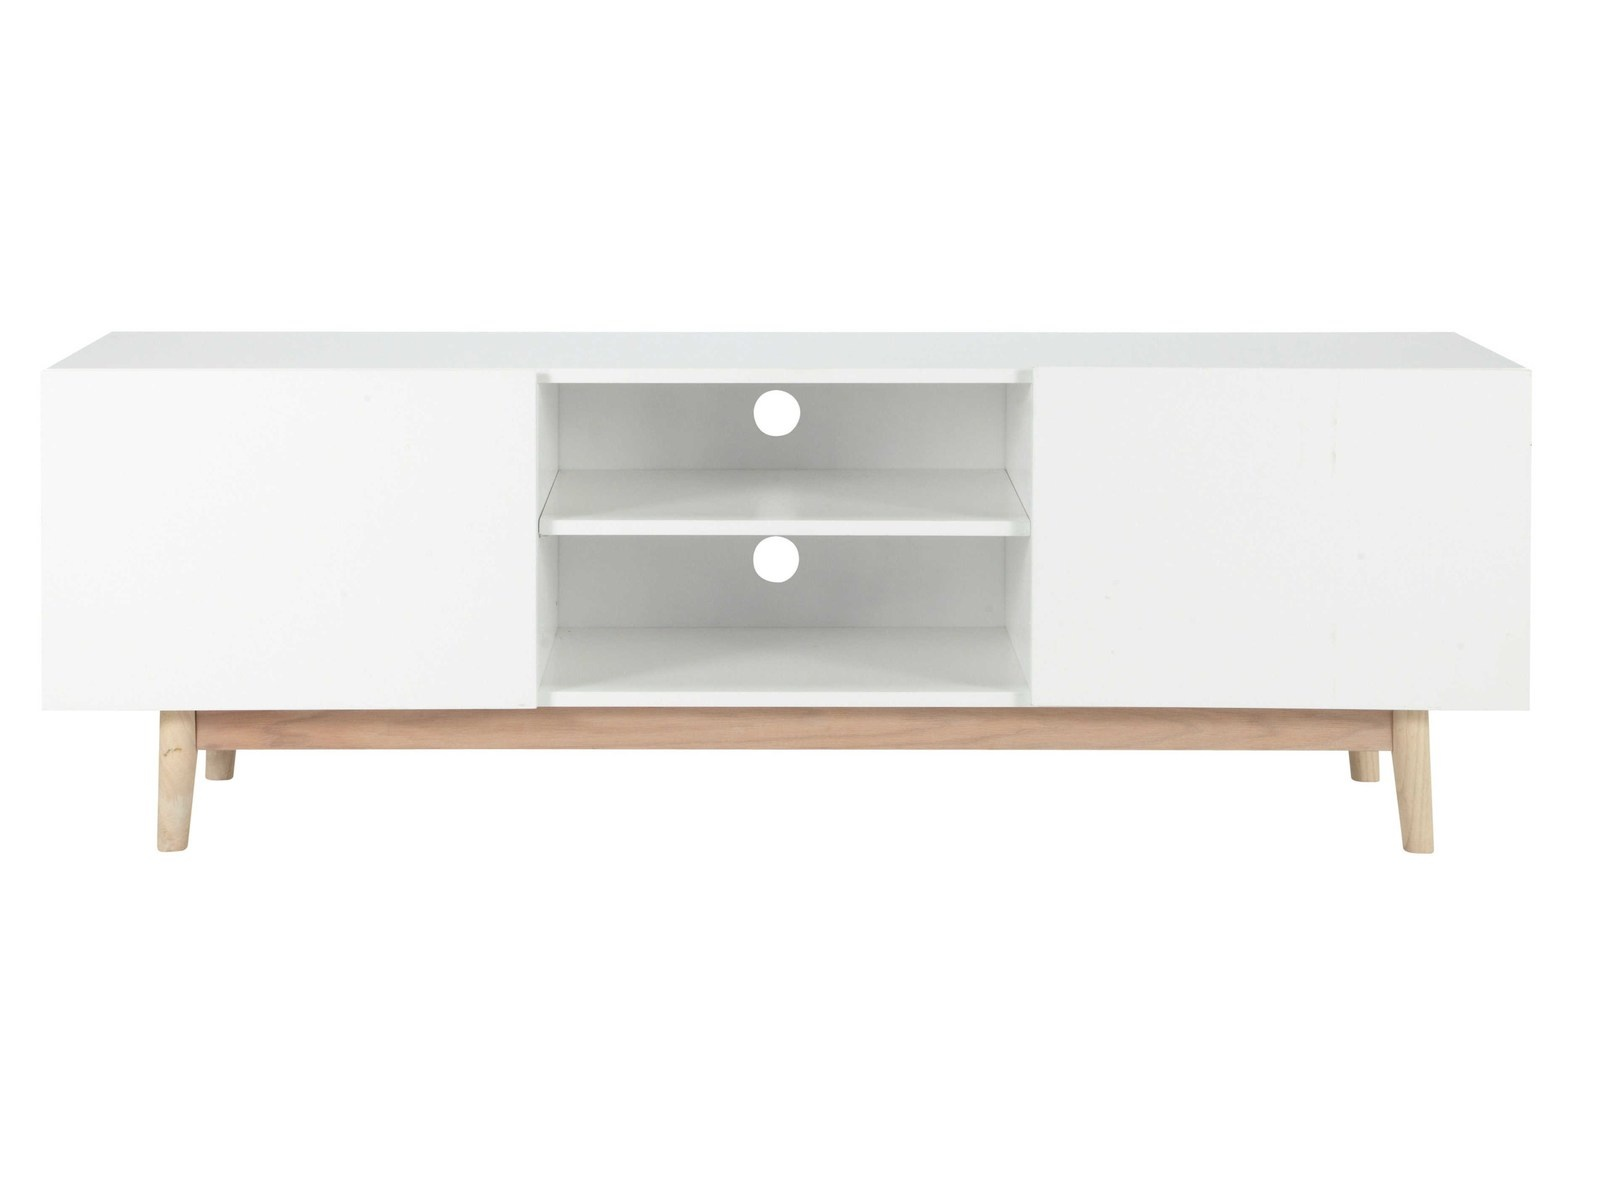 Meuble Tv Scandinave Ikea - Meuble Tv Scandinave Ikea Sellingstg Com[mjhdah]http://www.miliboo.com/meuble-tv-scandinave-blanc-brillant-et-frene-180cm-melka-32041-principale_0_0_0.jpg